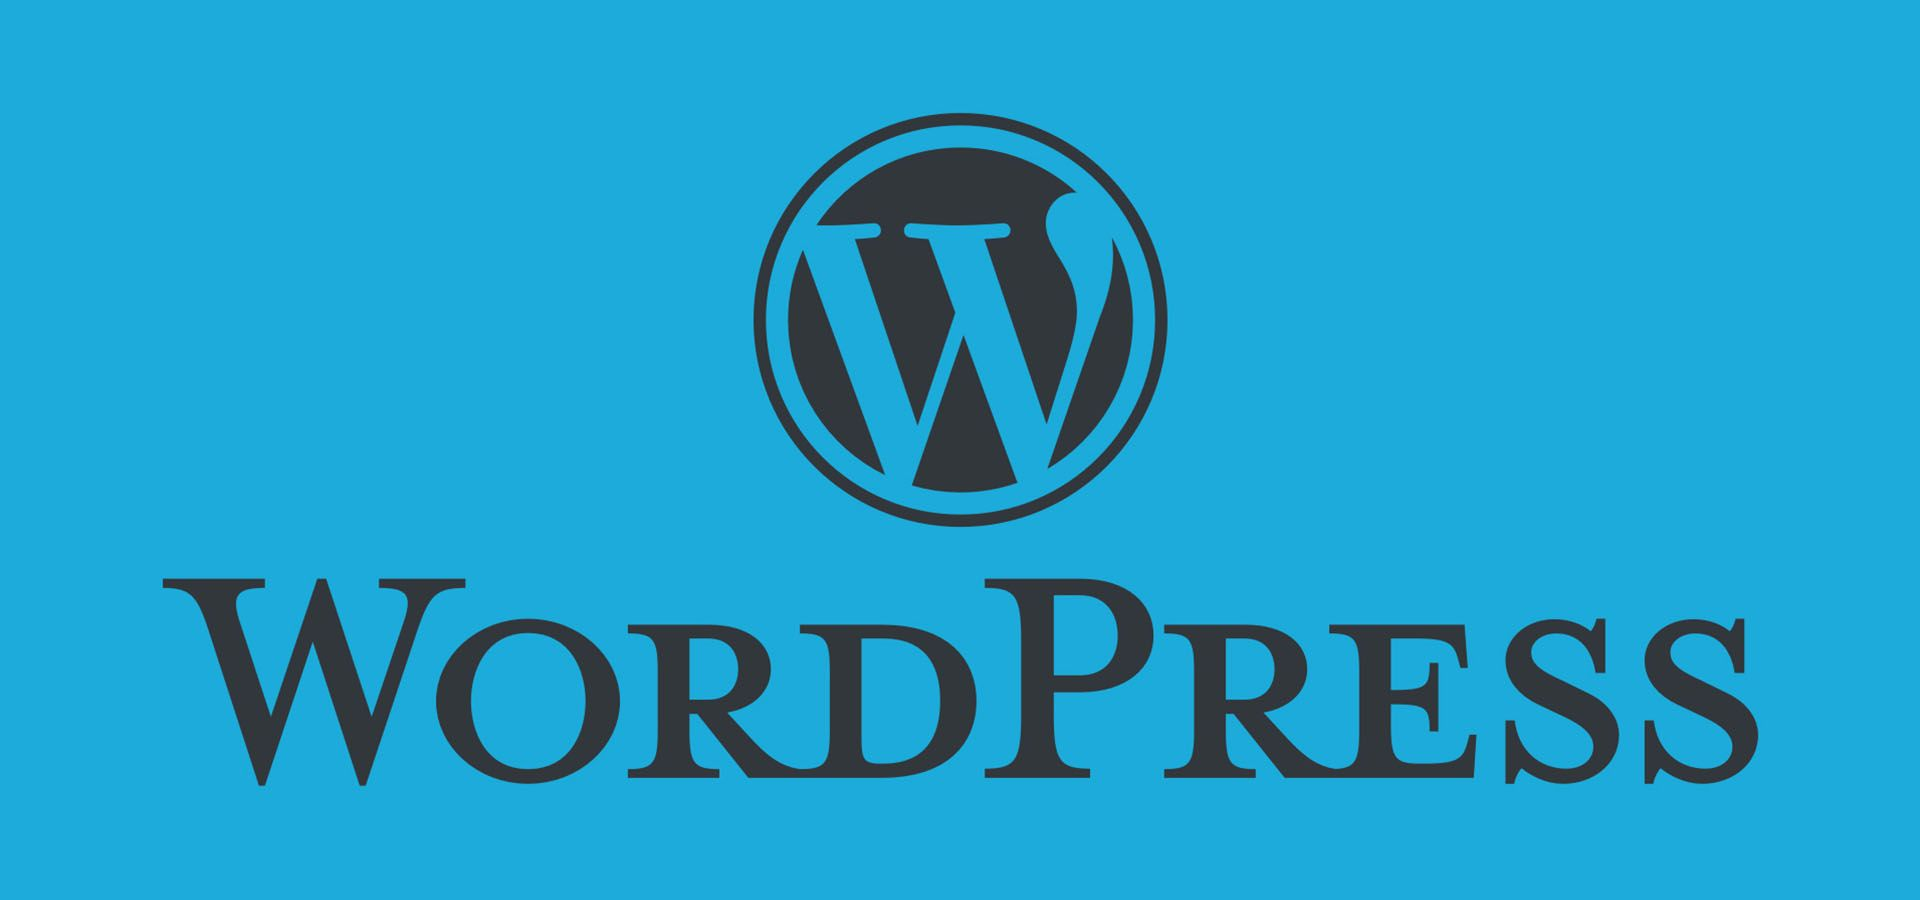 Šta je WordPress?